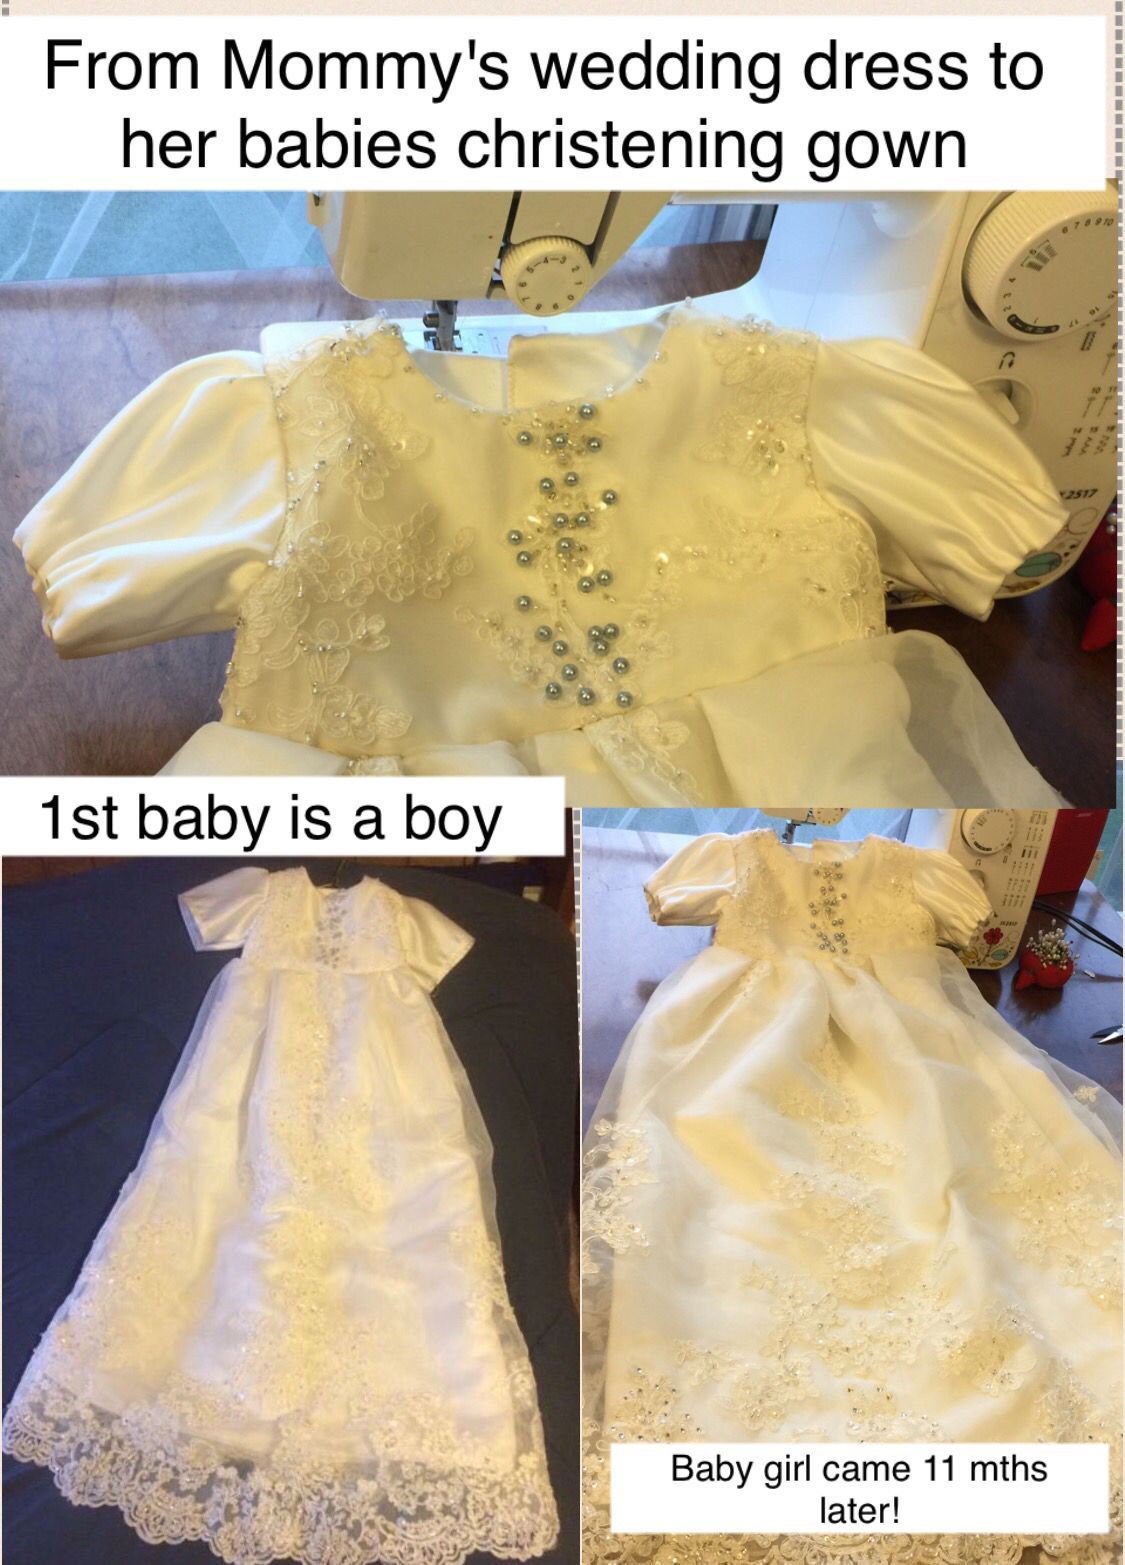 Wedding dress converted to christening gown made for baby boy